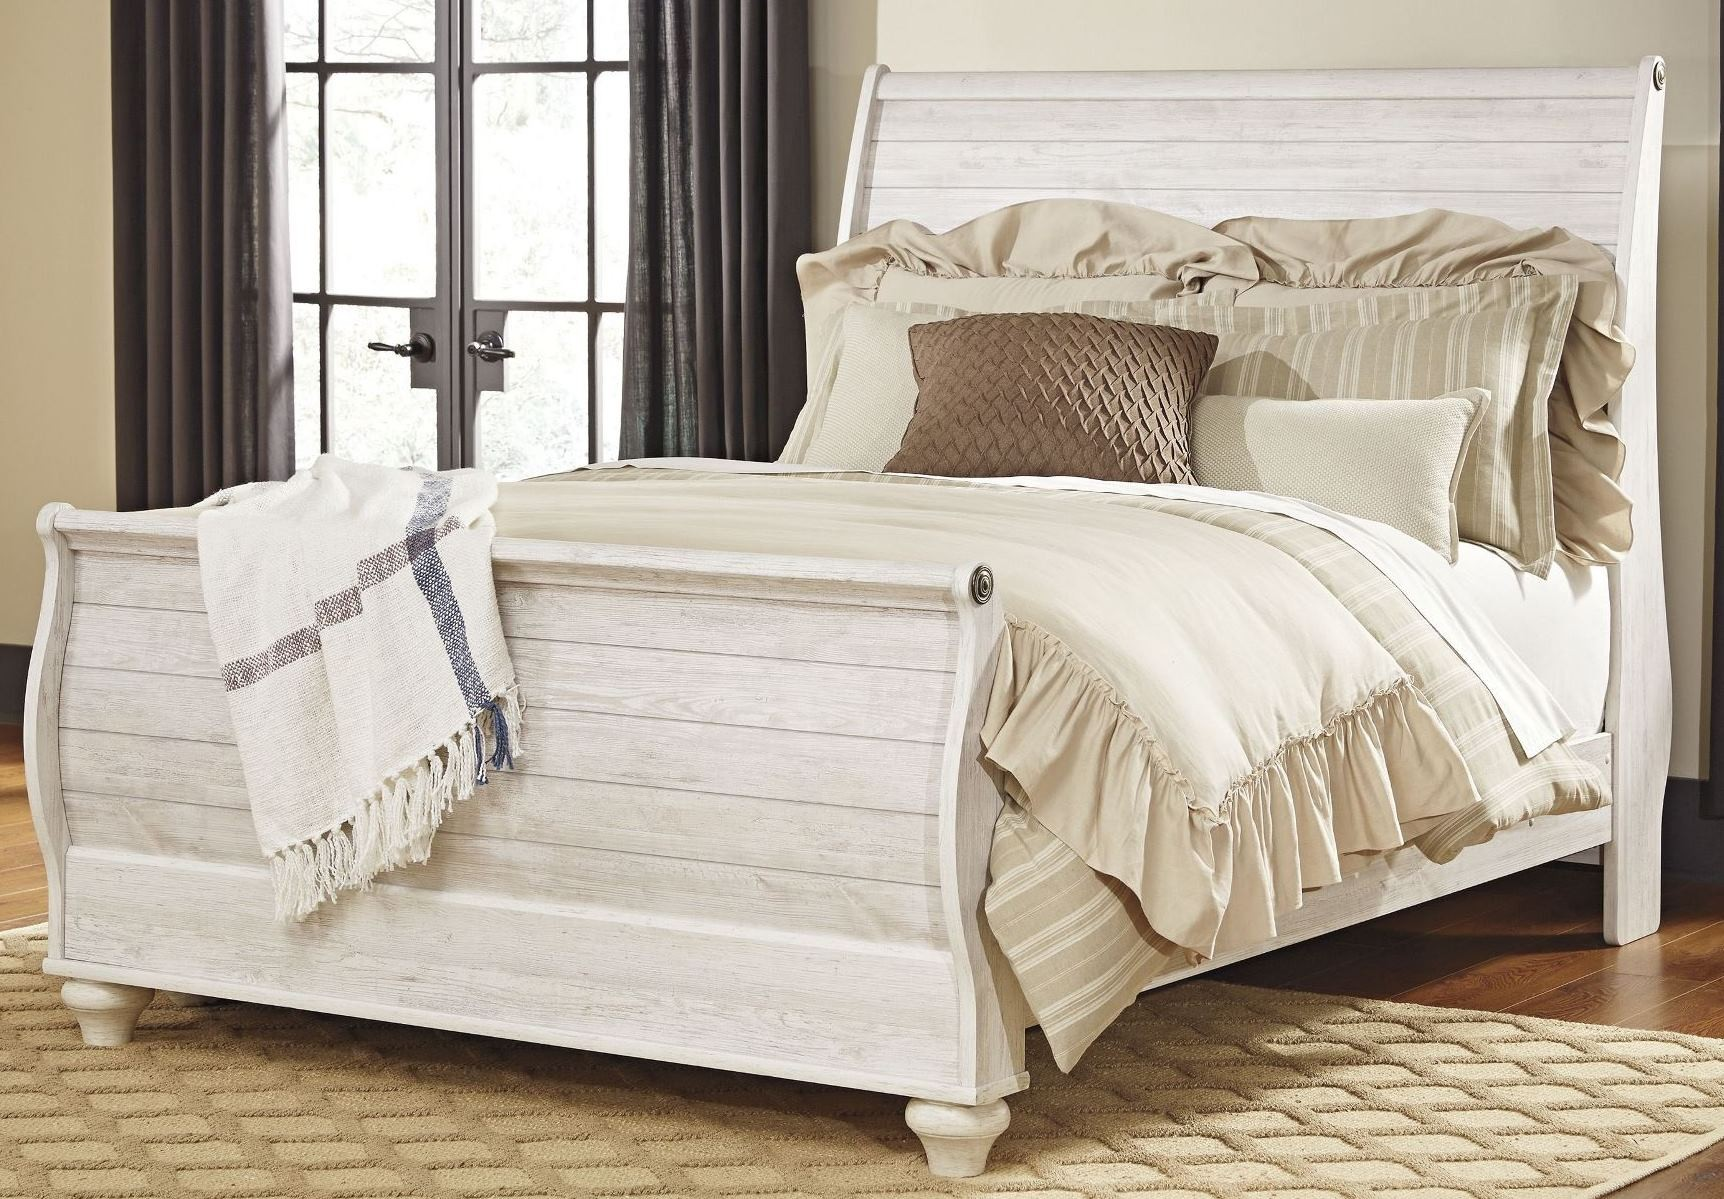 Willowton Whitewash Queen Sleigh Bed B267 74 77 96 Ashley